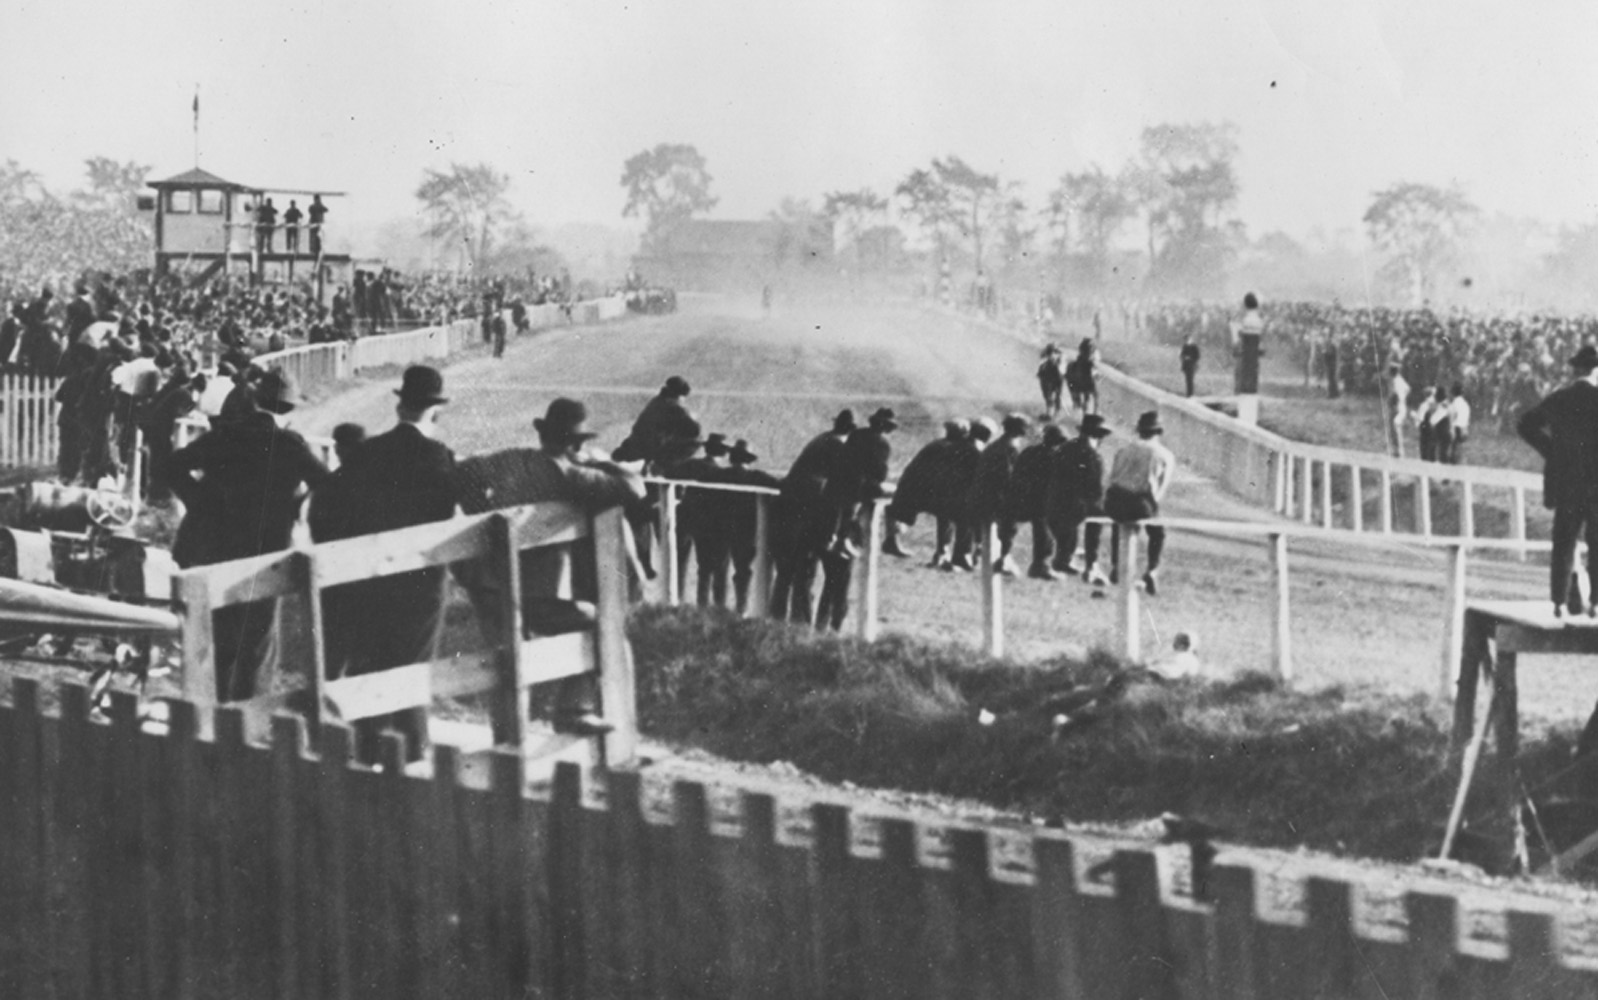 Man o' War duels Sir Barton in the Kenilworth Gold Cup match race on Oct. 12, 1920 in Windsor, Ontario (Brown Bros./Museum Collection)